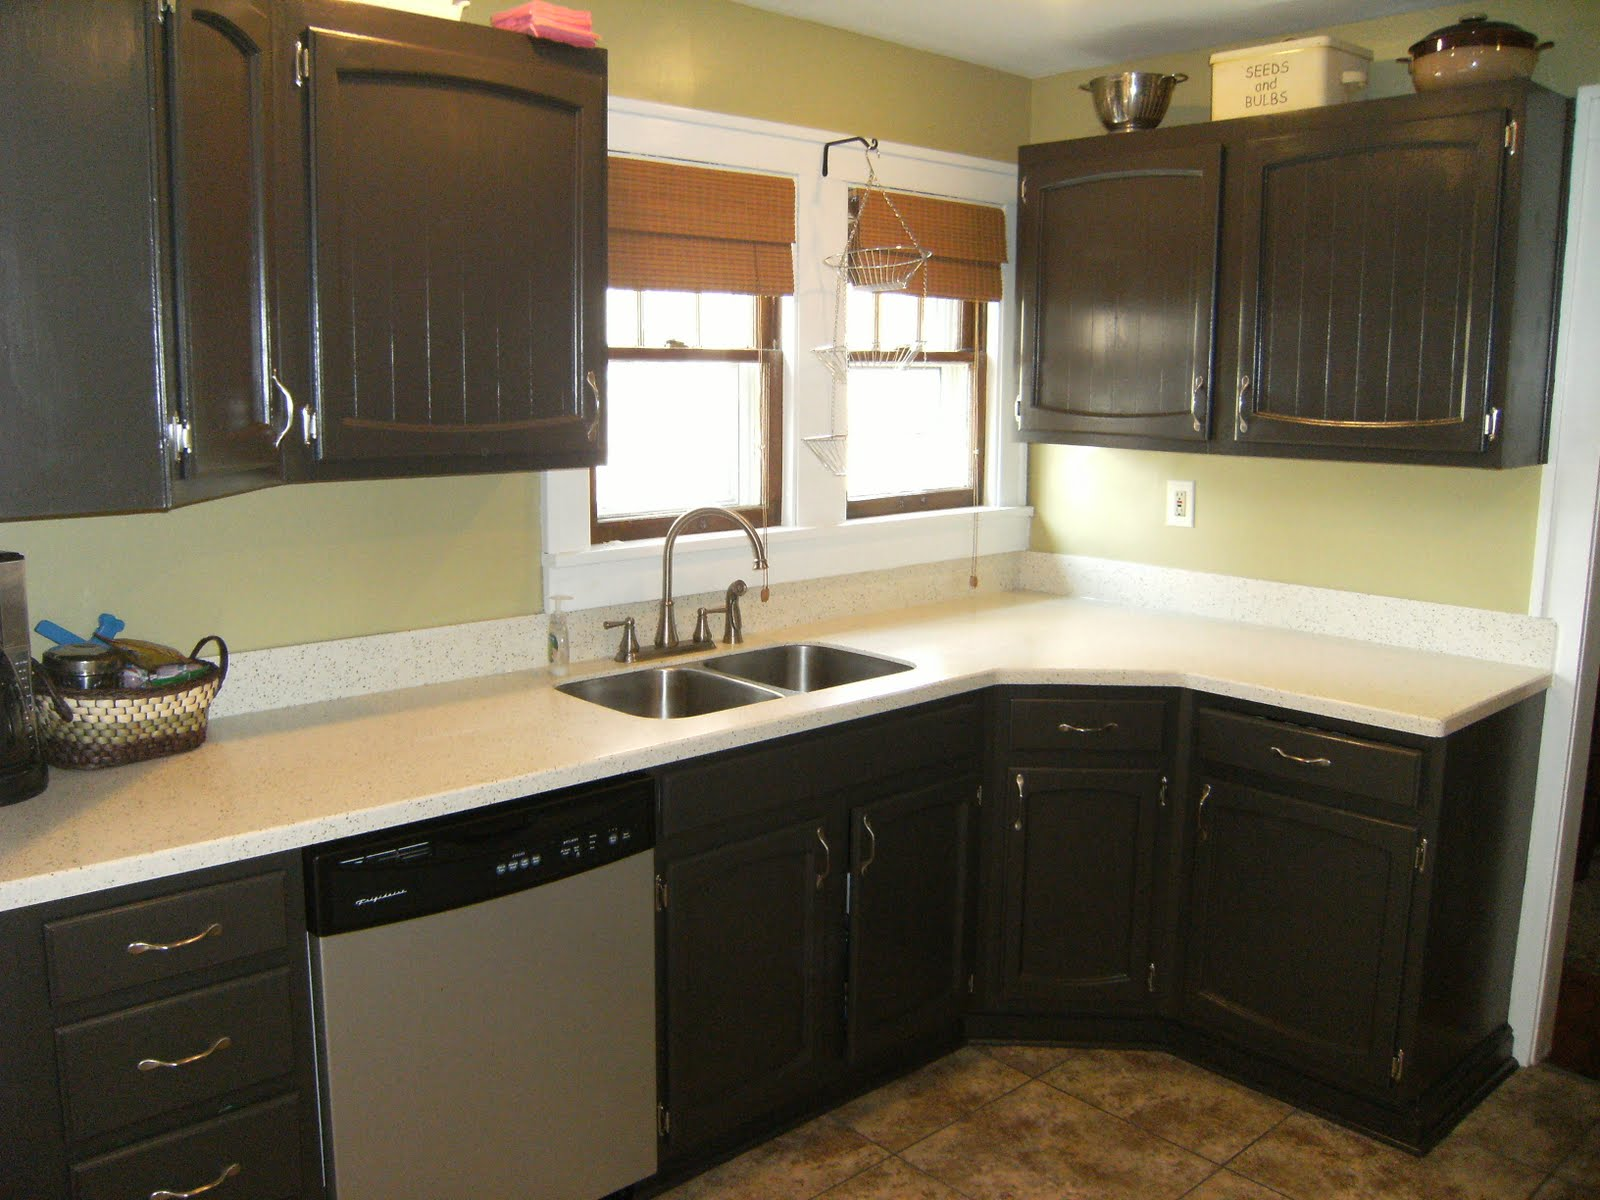 White And Black Painting Kitchen Countertops Ideas (View 9 of 10)